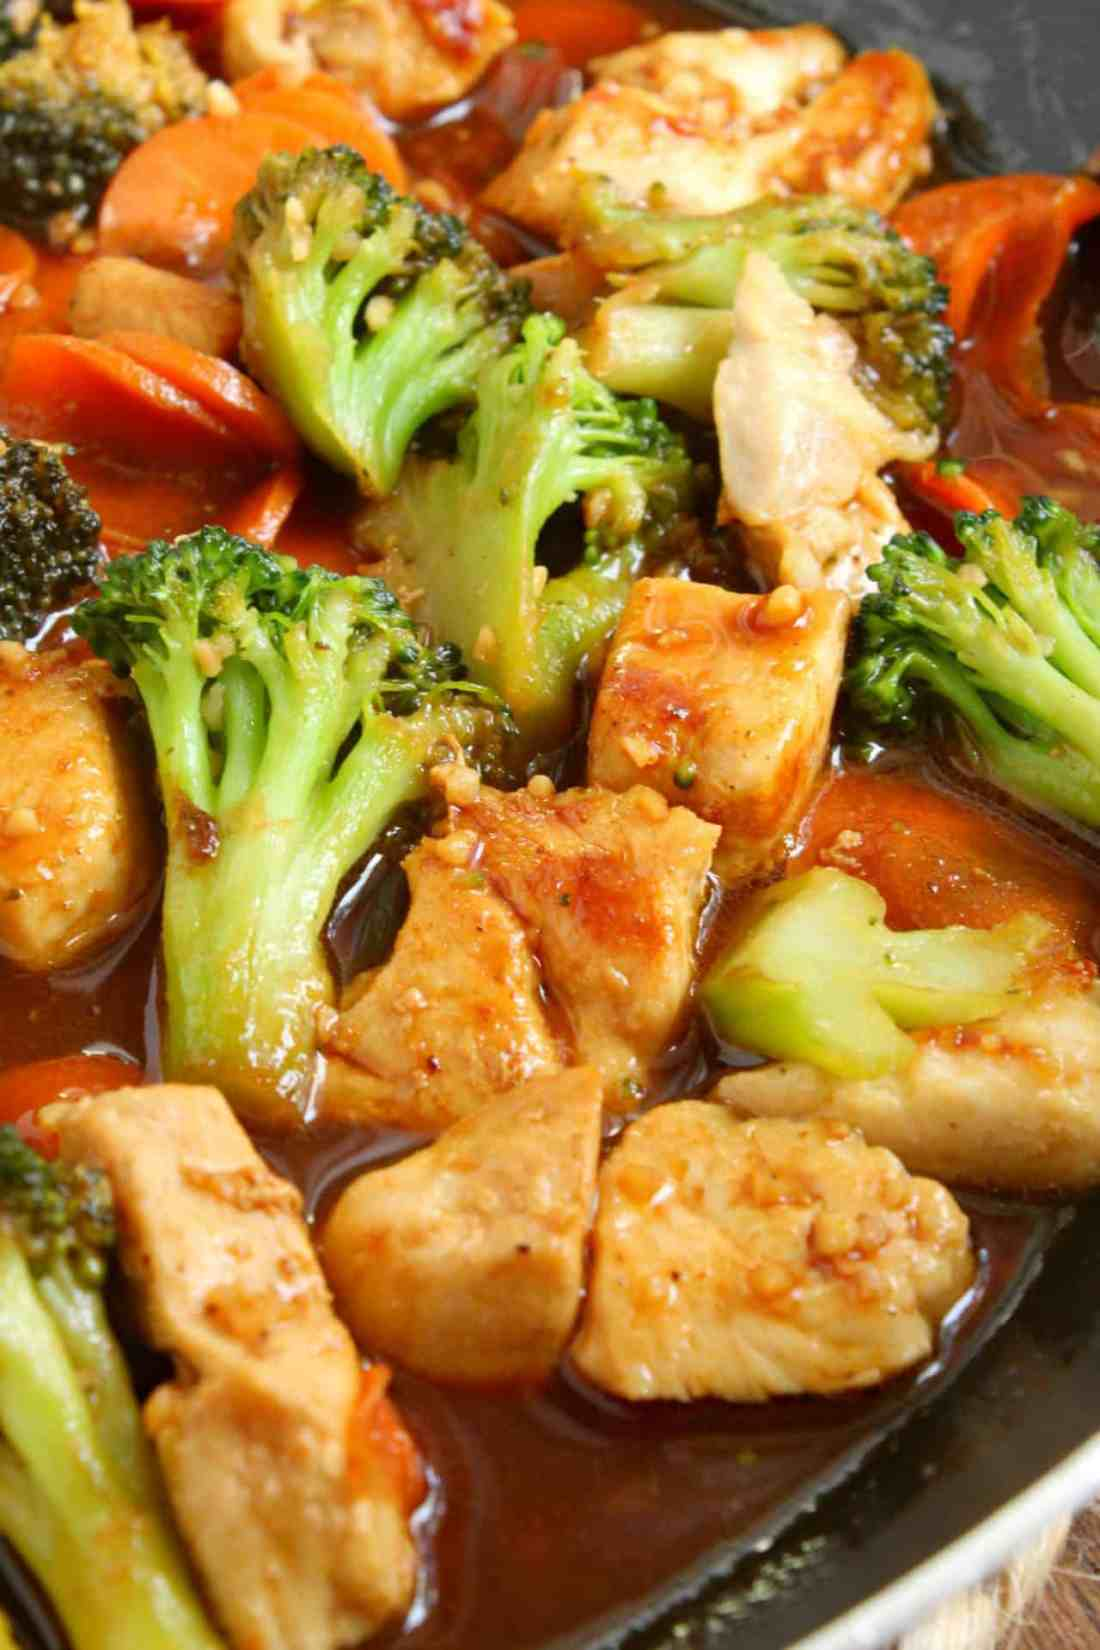 chicken, broccoli and carrots in a honey garlic sauce